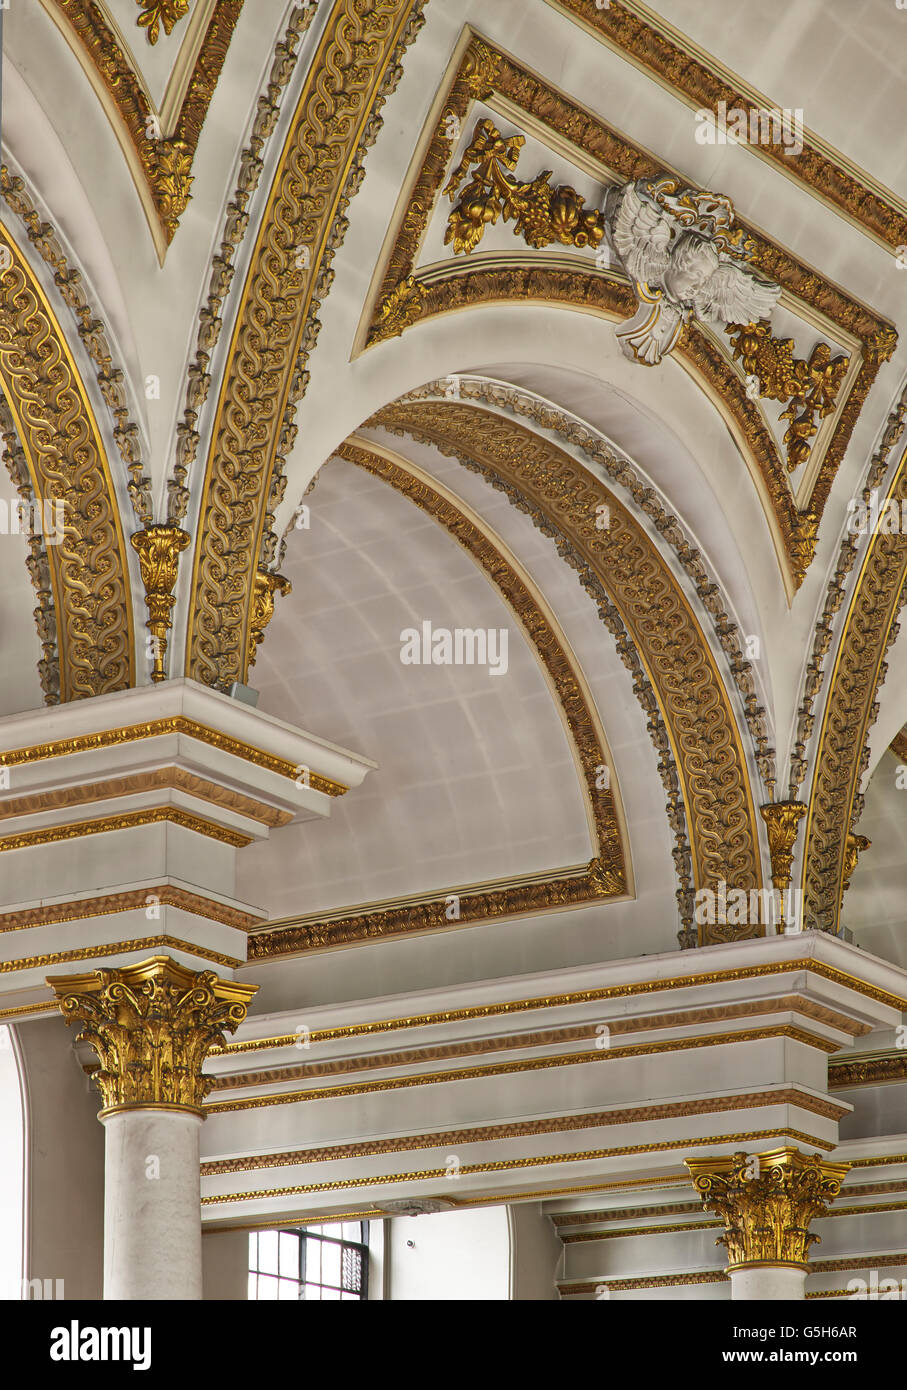 St James's PIccadilly, church in London by Christopher Wren. Interior nave vaulting - Stock Image